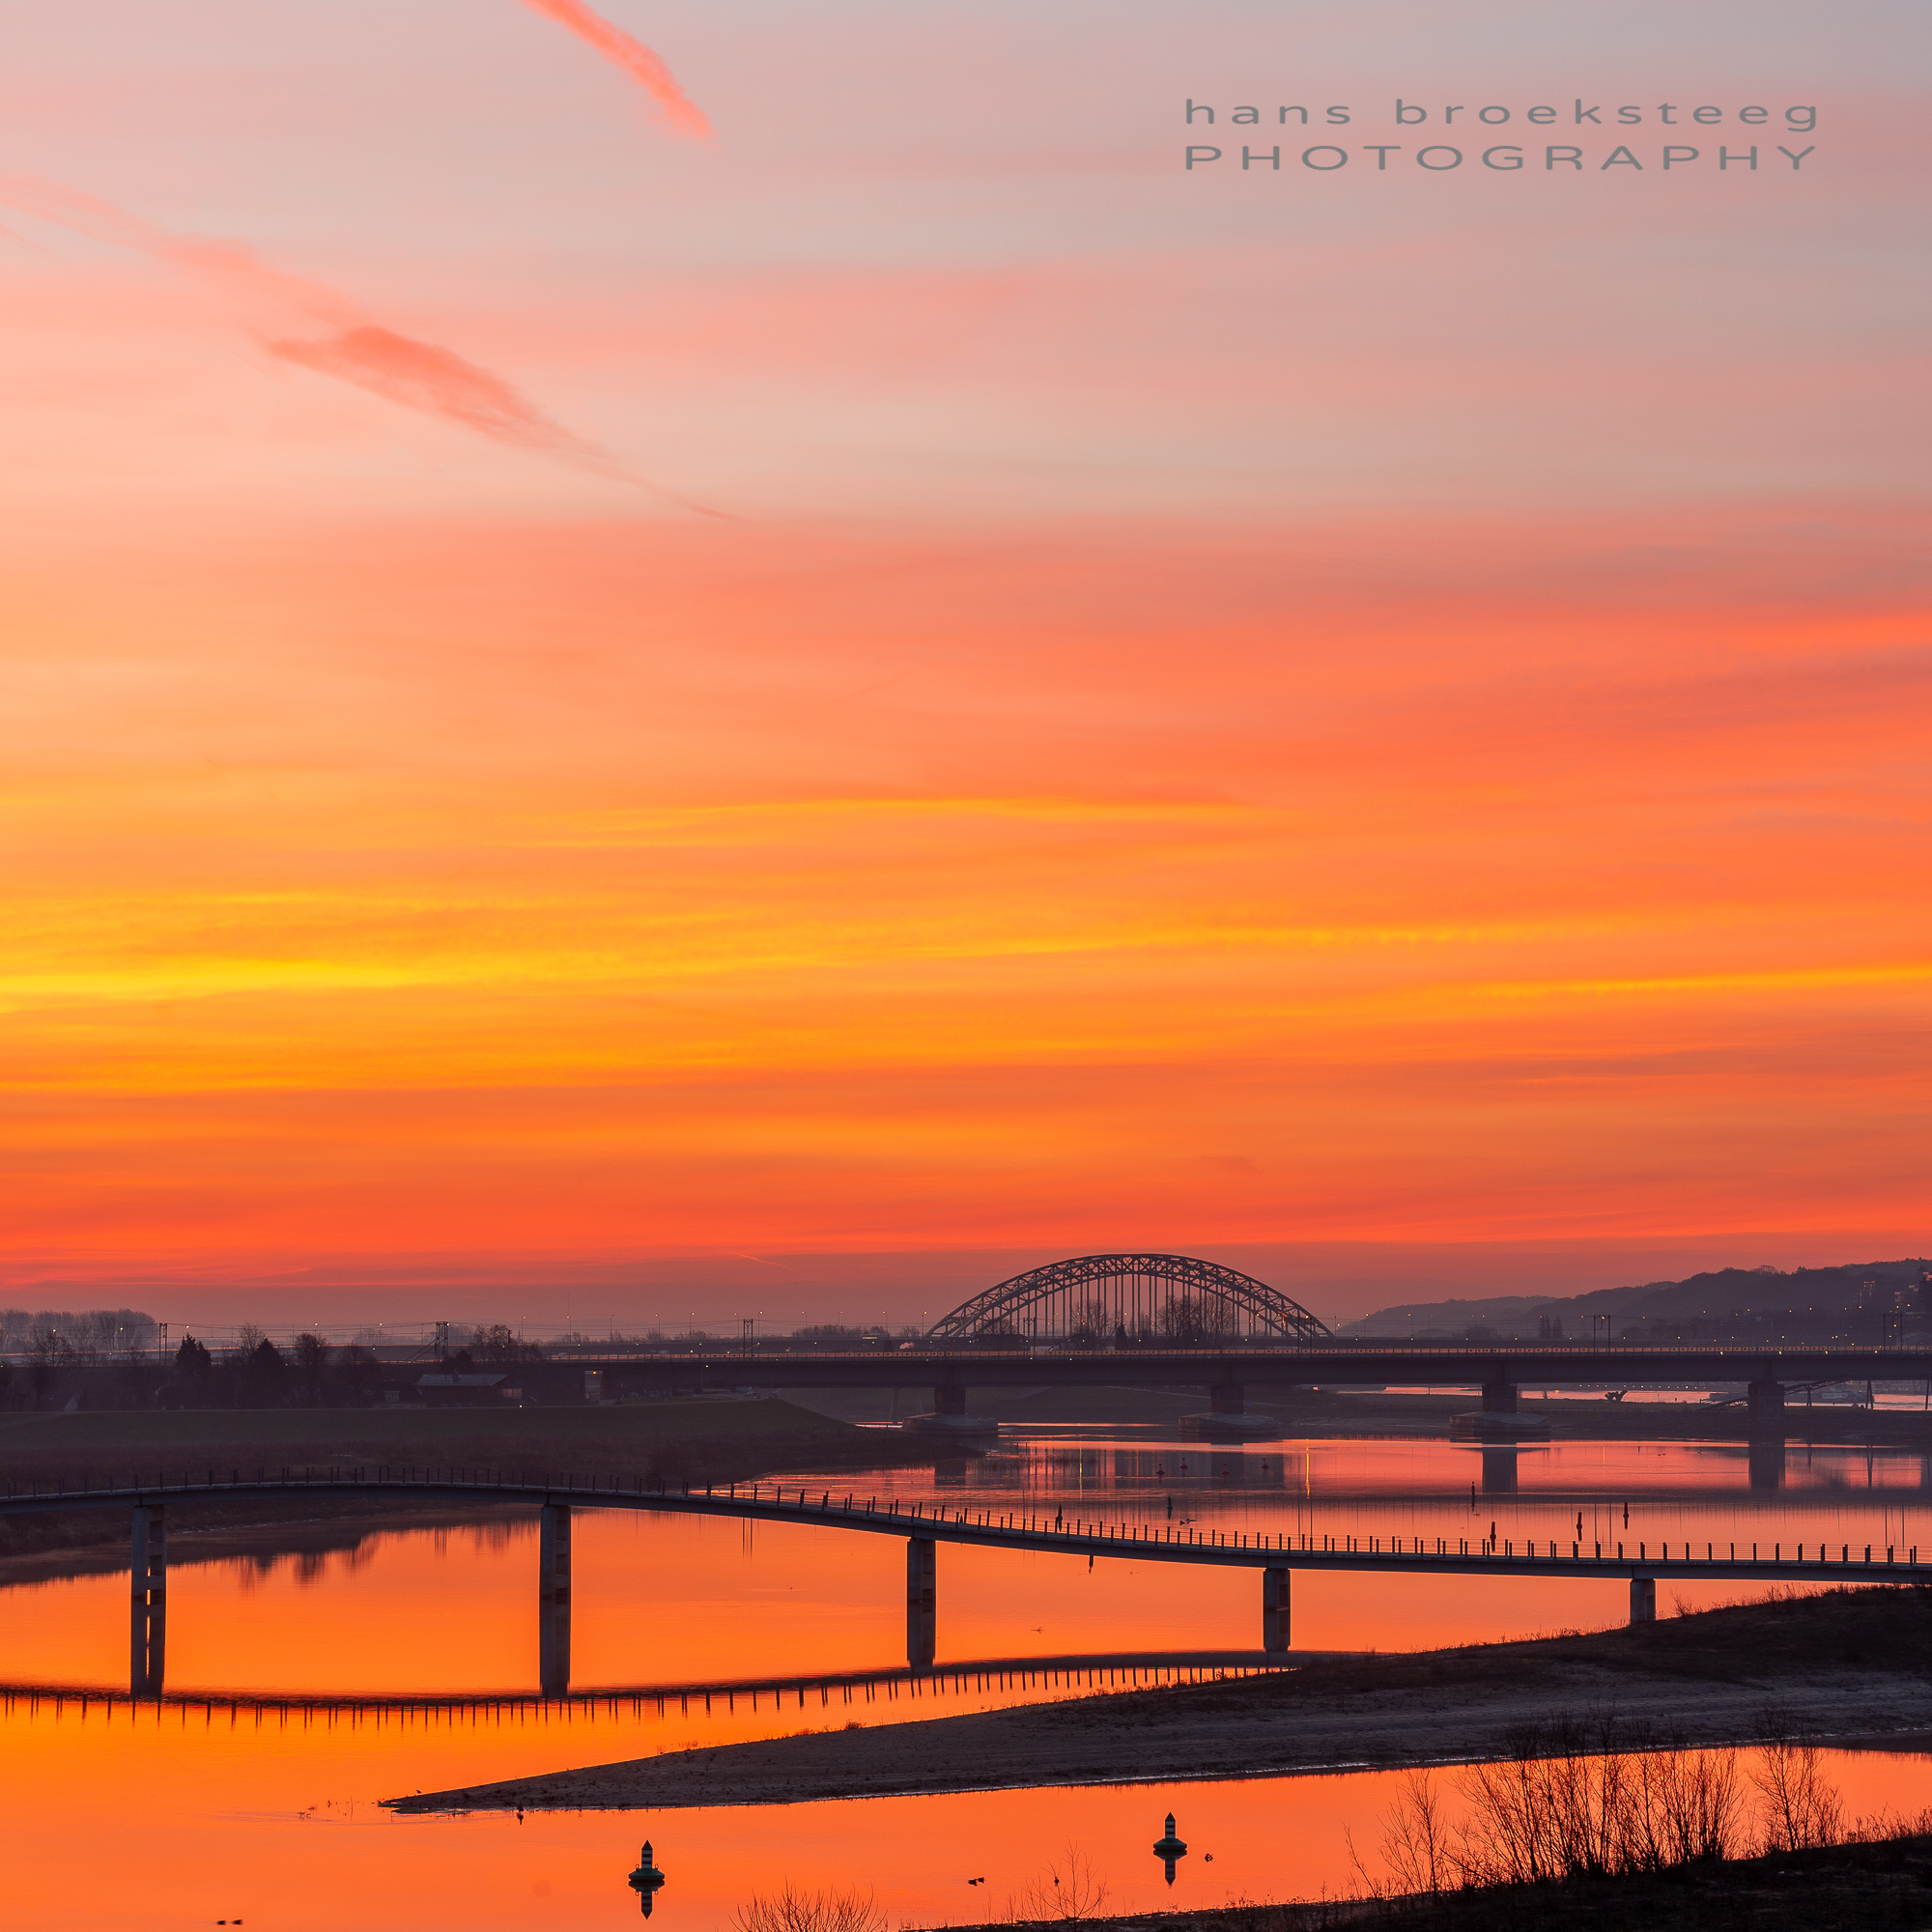 Morning view with amazing red sky over the Waal river, Nijmegen